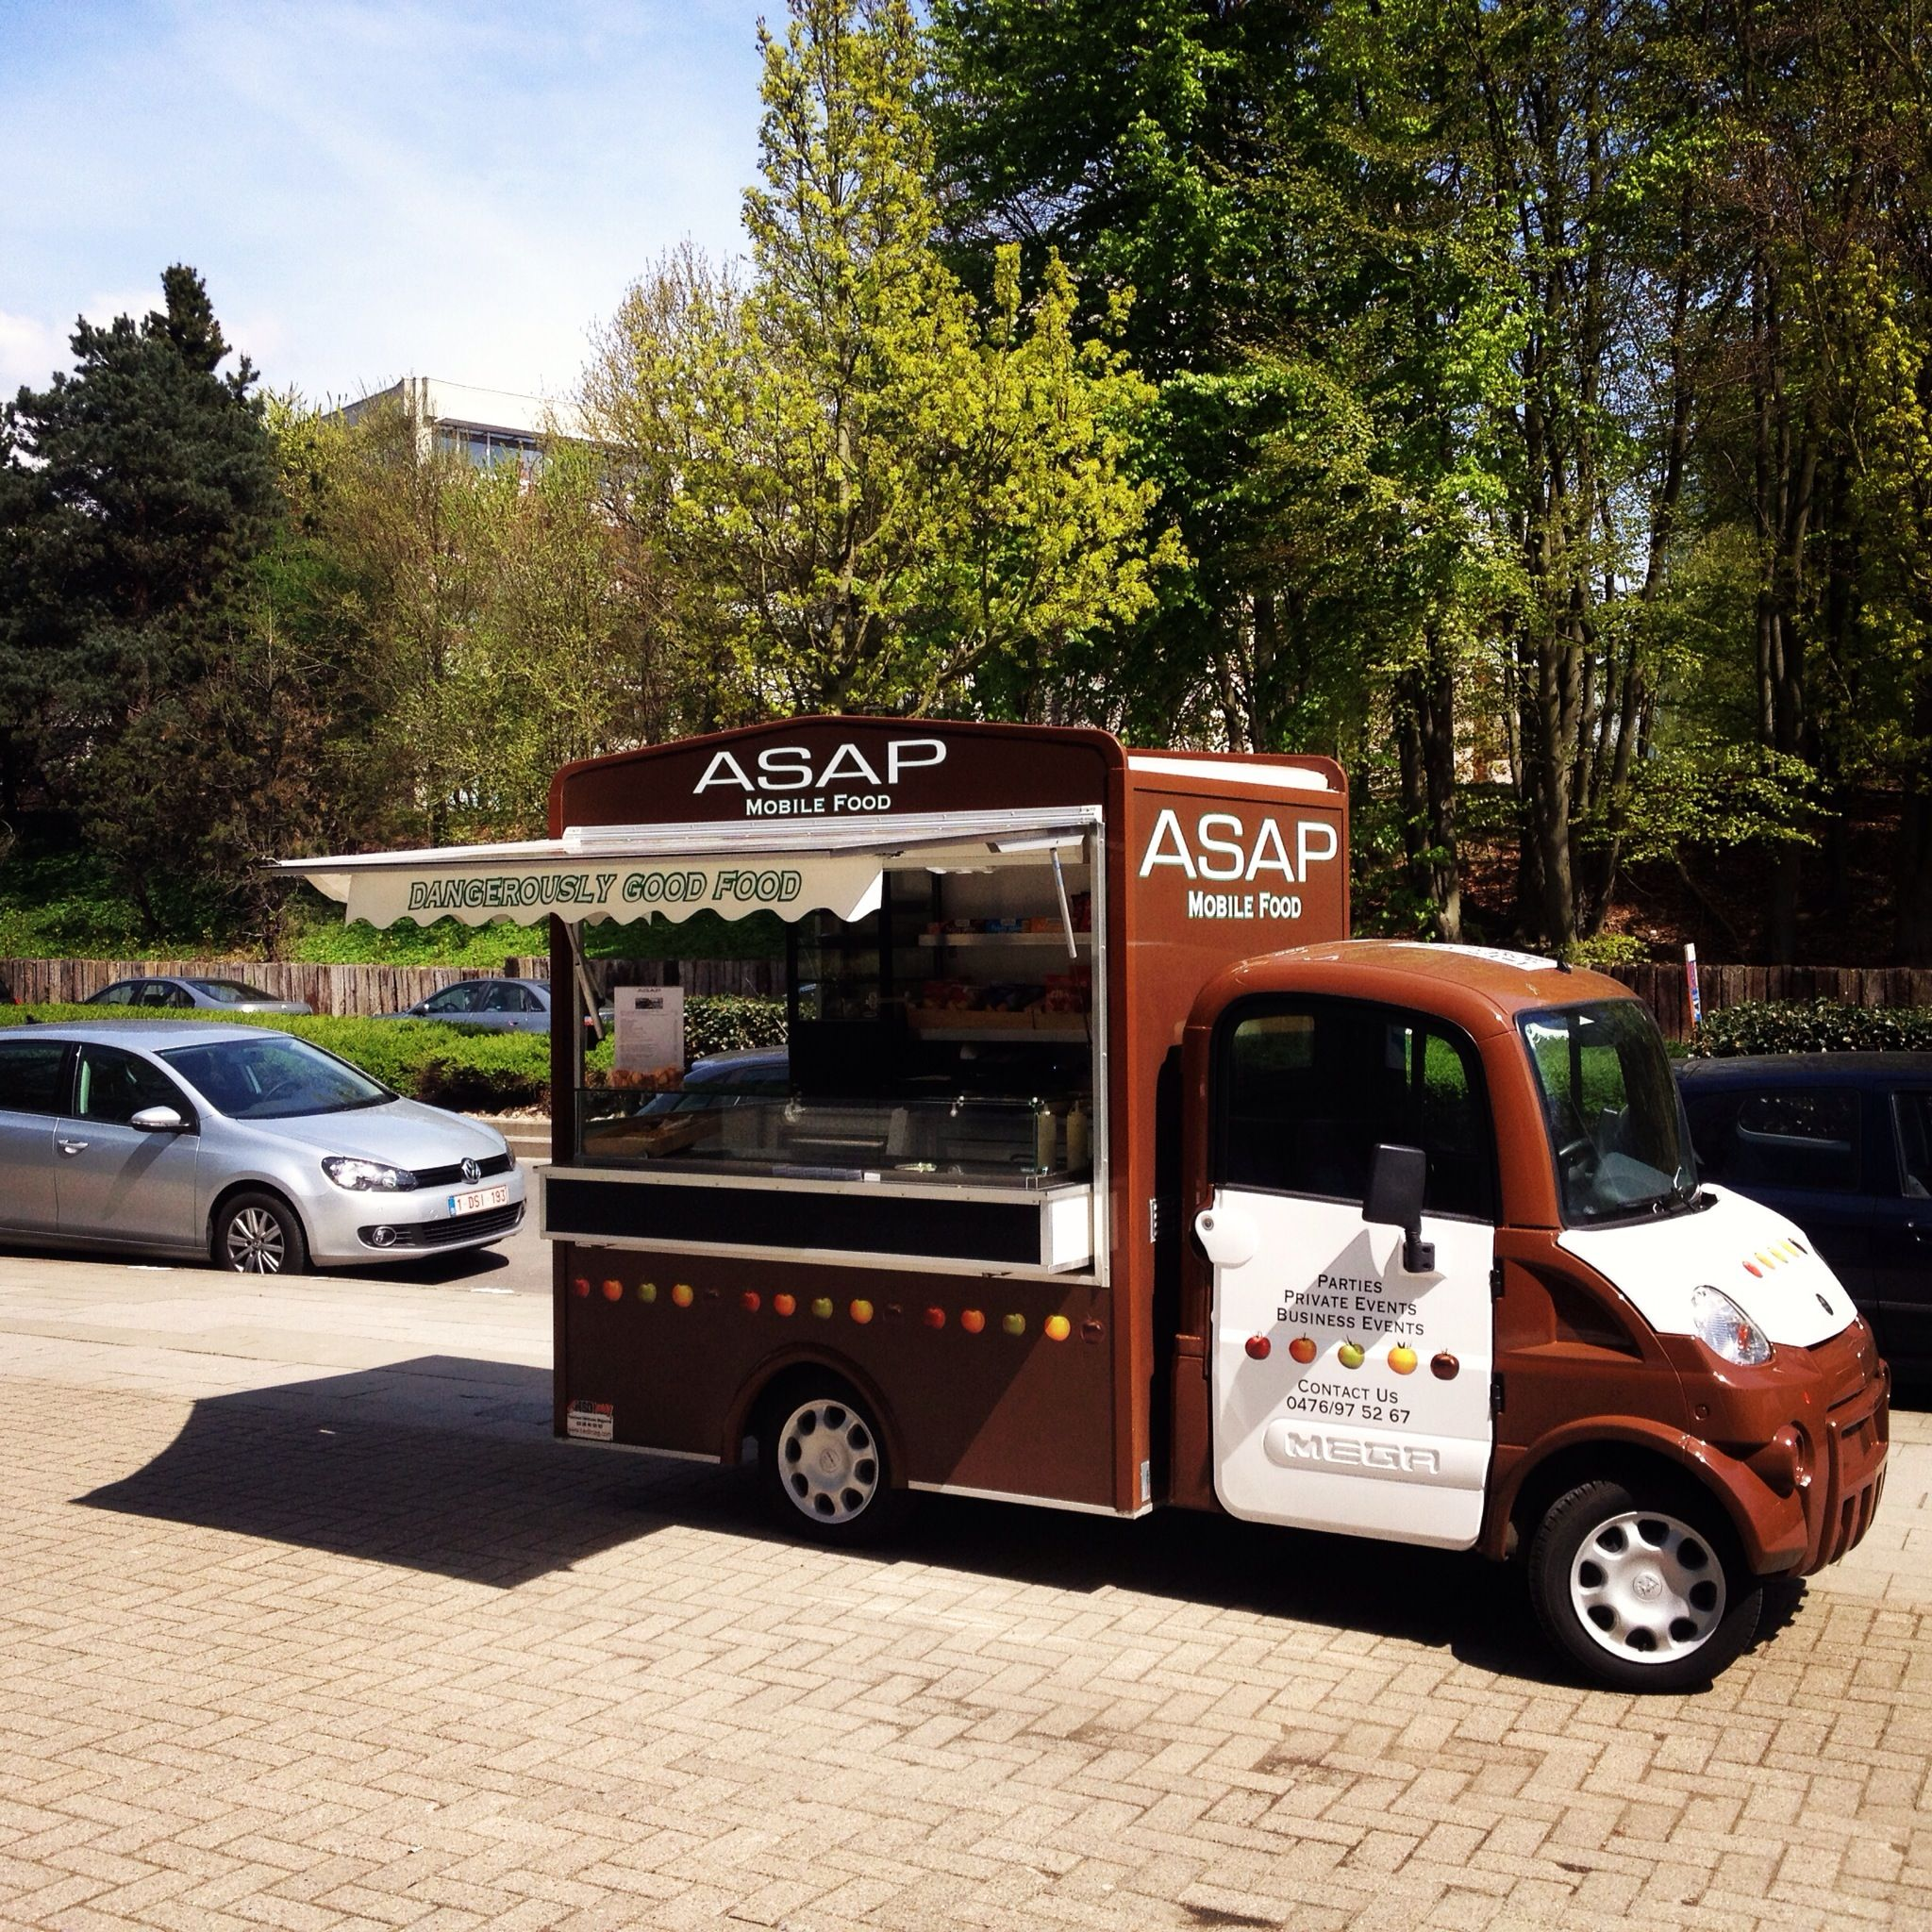 Asap brussels mobile food trucklarge variety of home